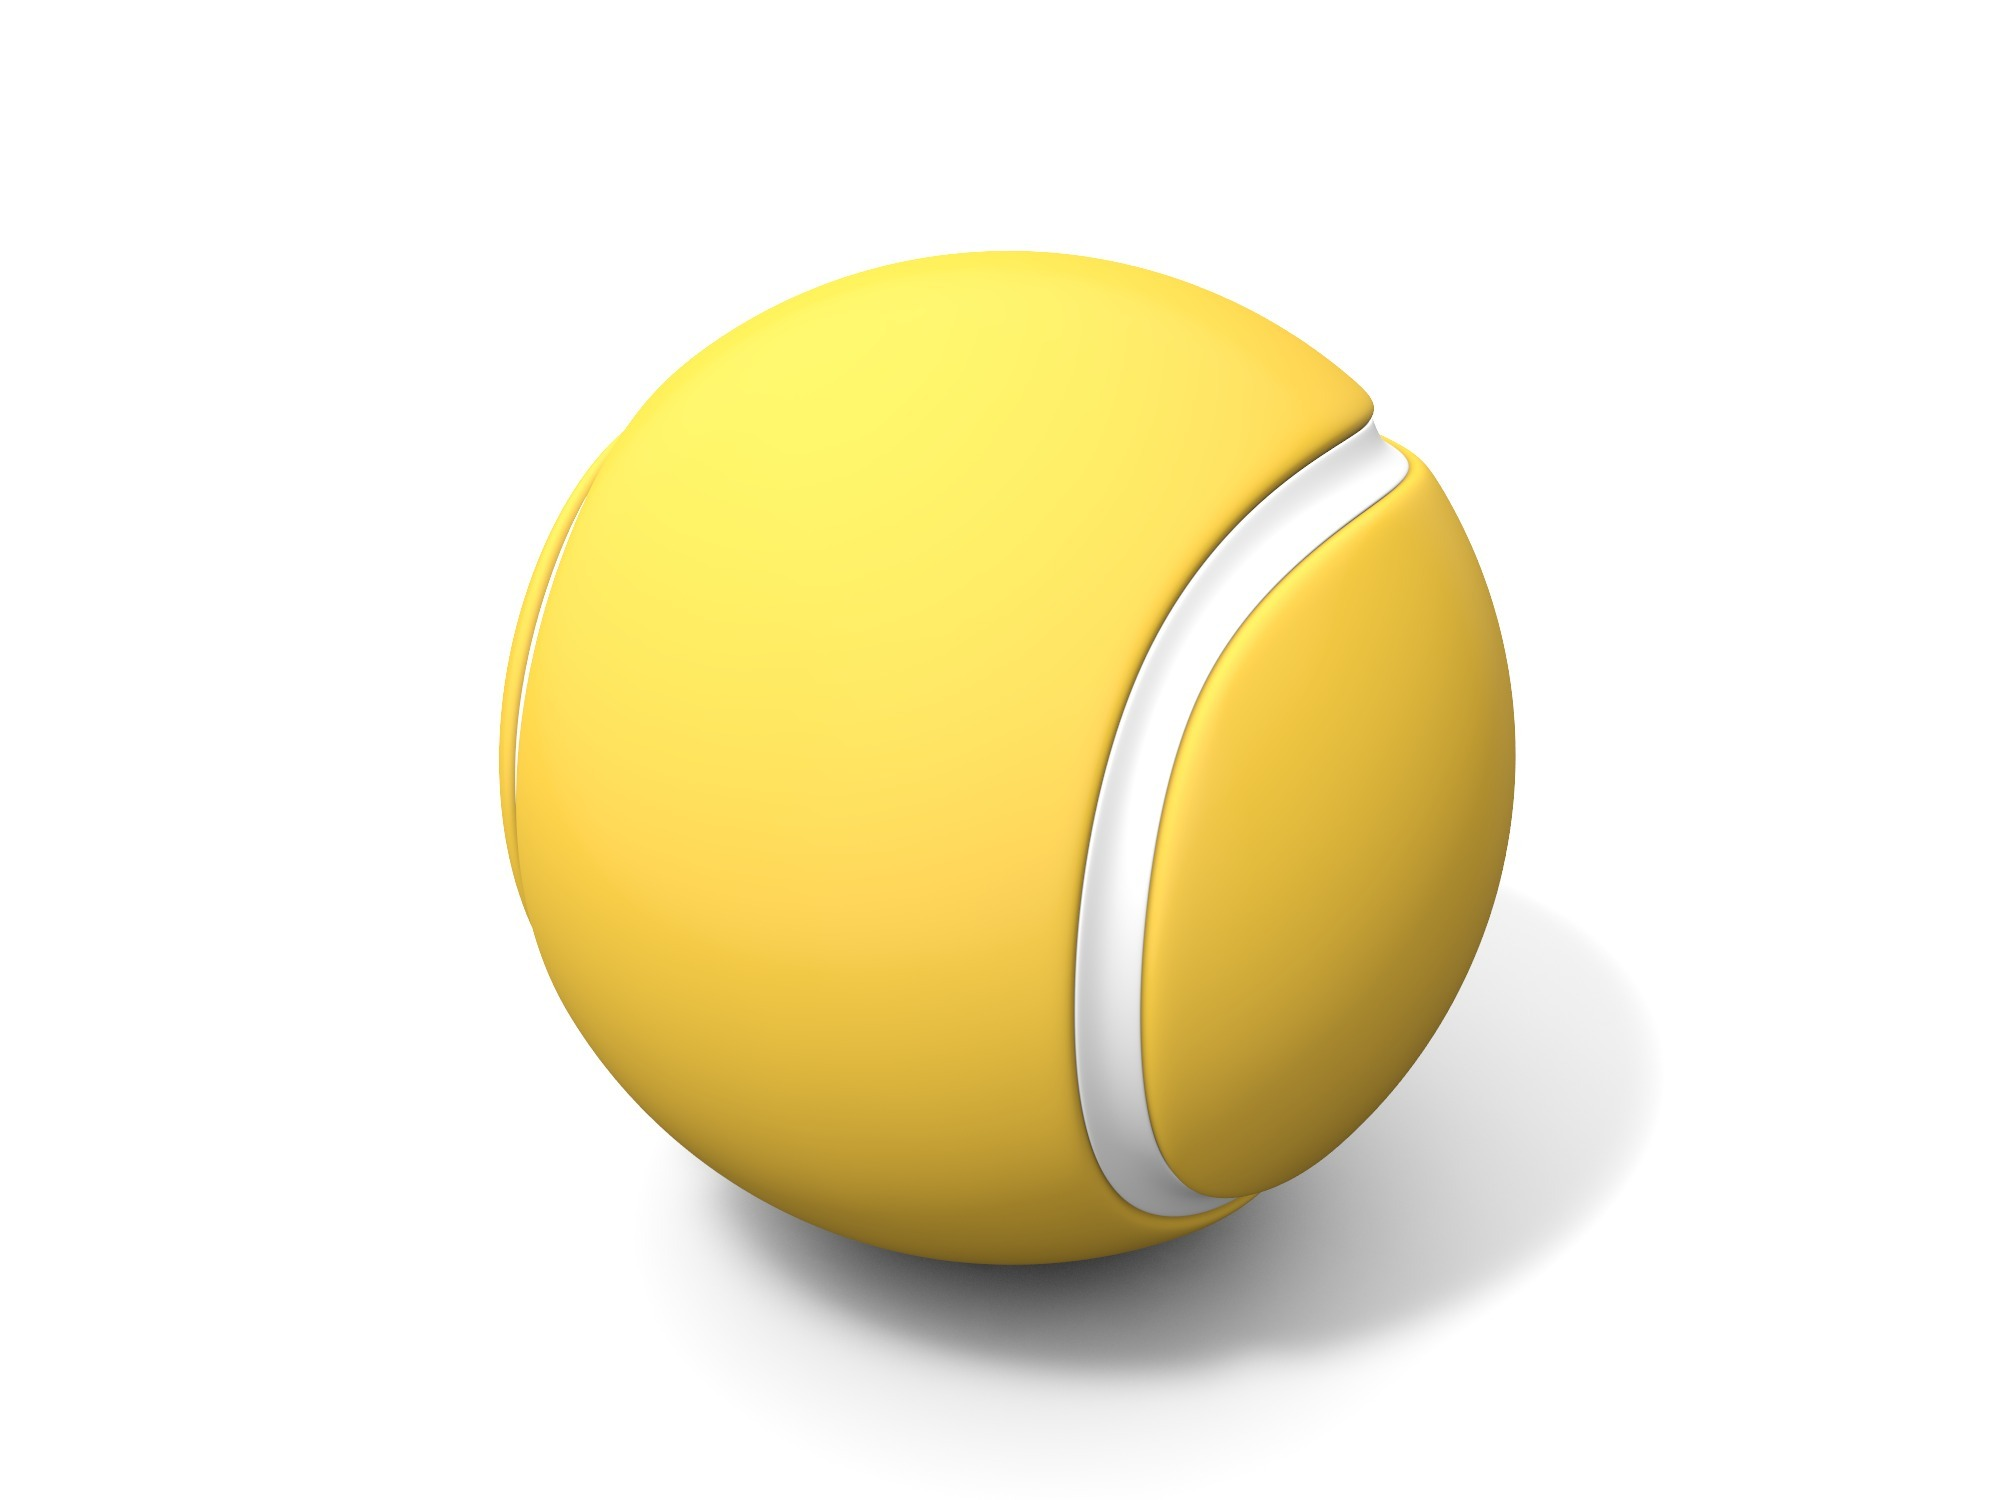 Tennis ball - 3D design by Vectary assets Nov 6, 2018